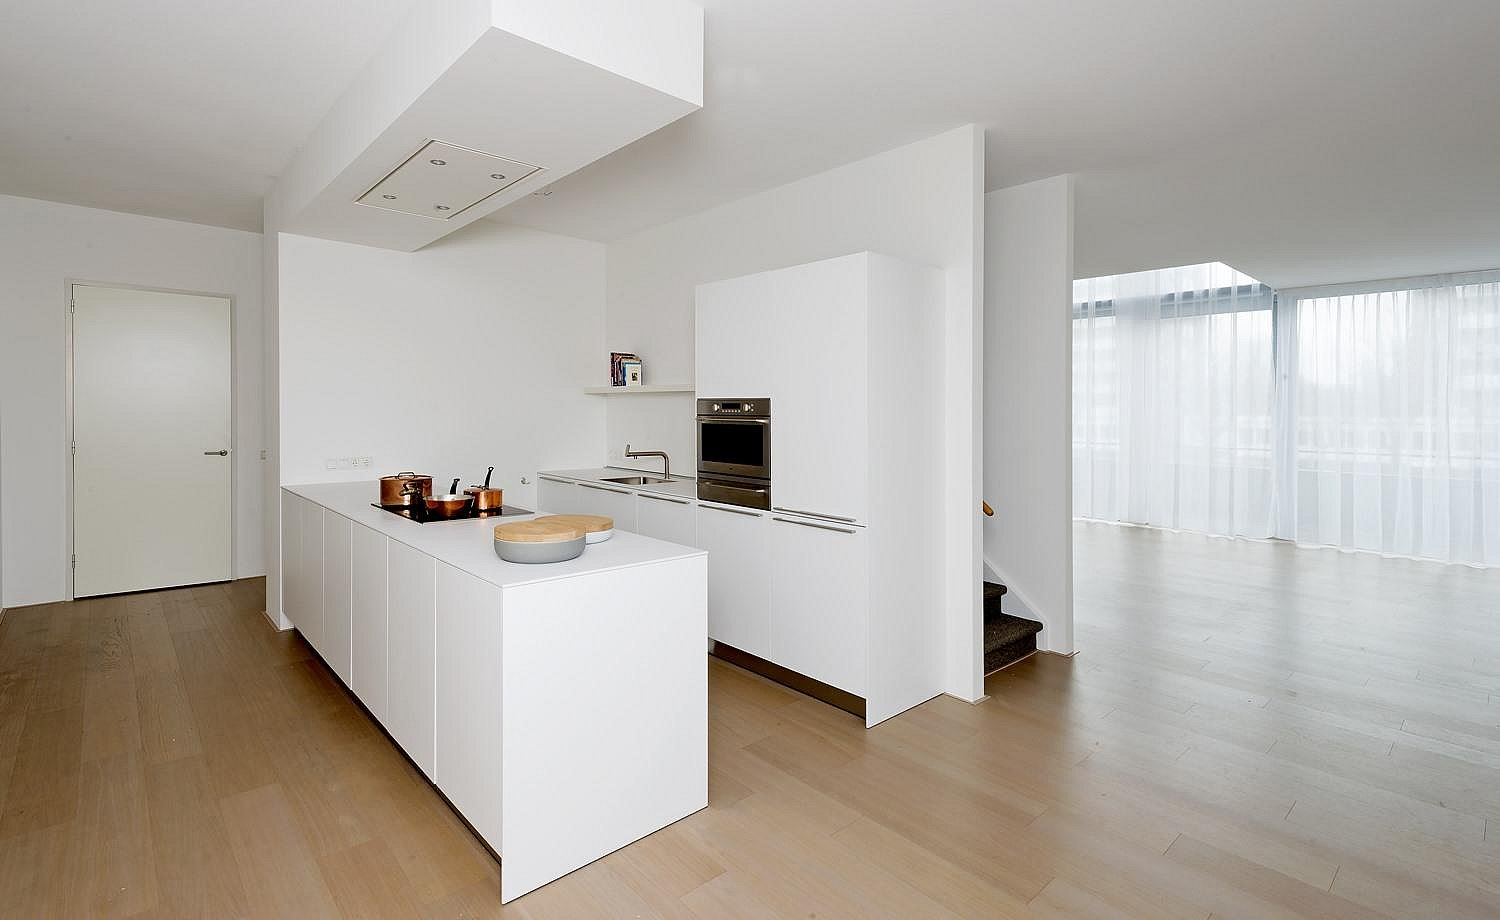 The white b3 with wall line and island as a centerpiece of the open-plan living space